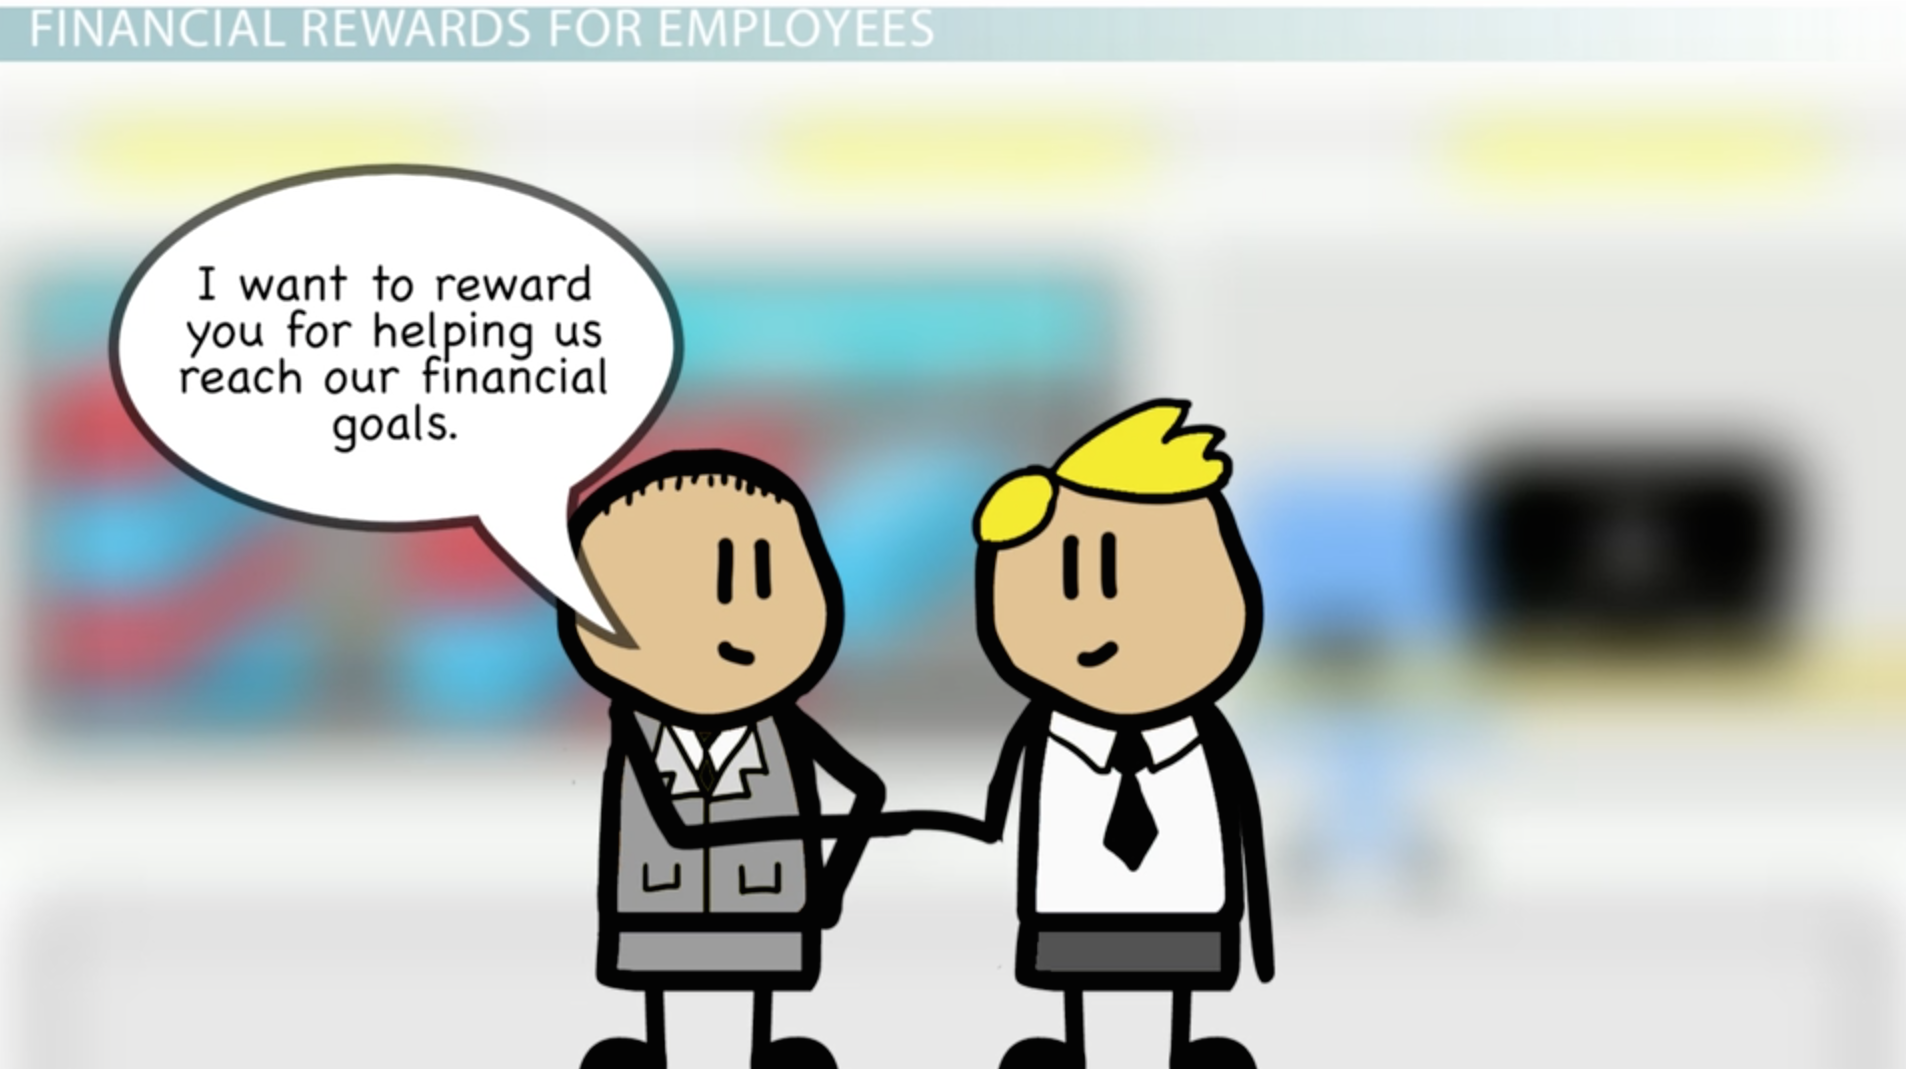 reward systems employee behavior intrinsic extrinsic rewards financial rewards for employees definition types